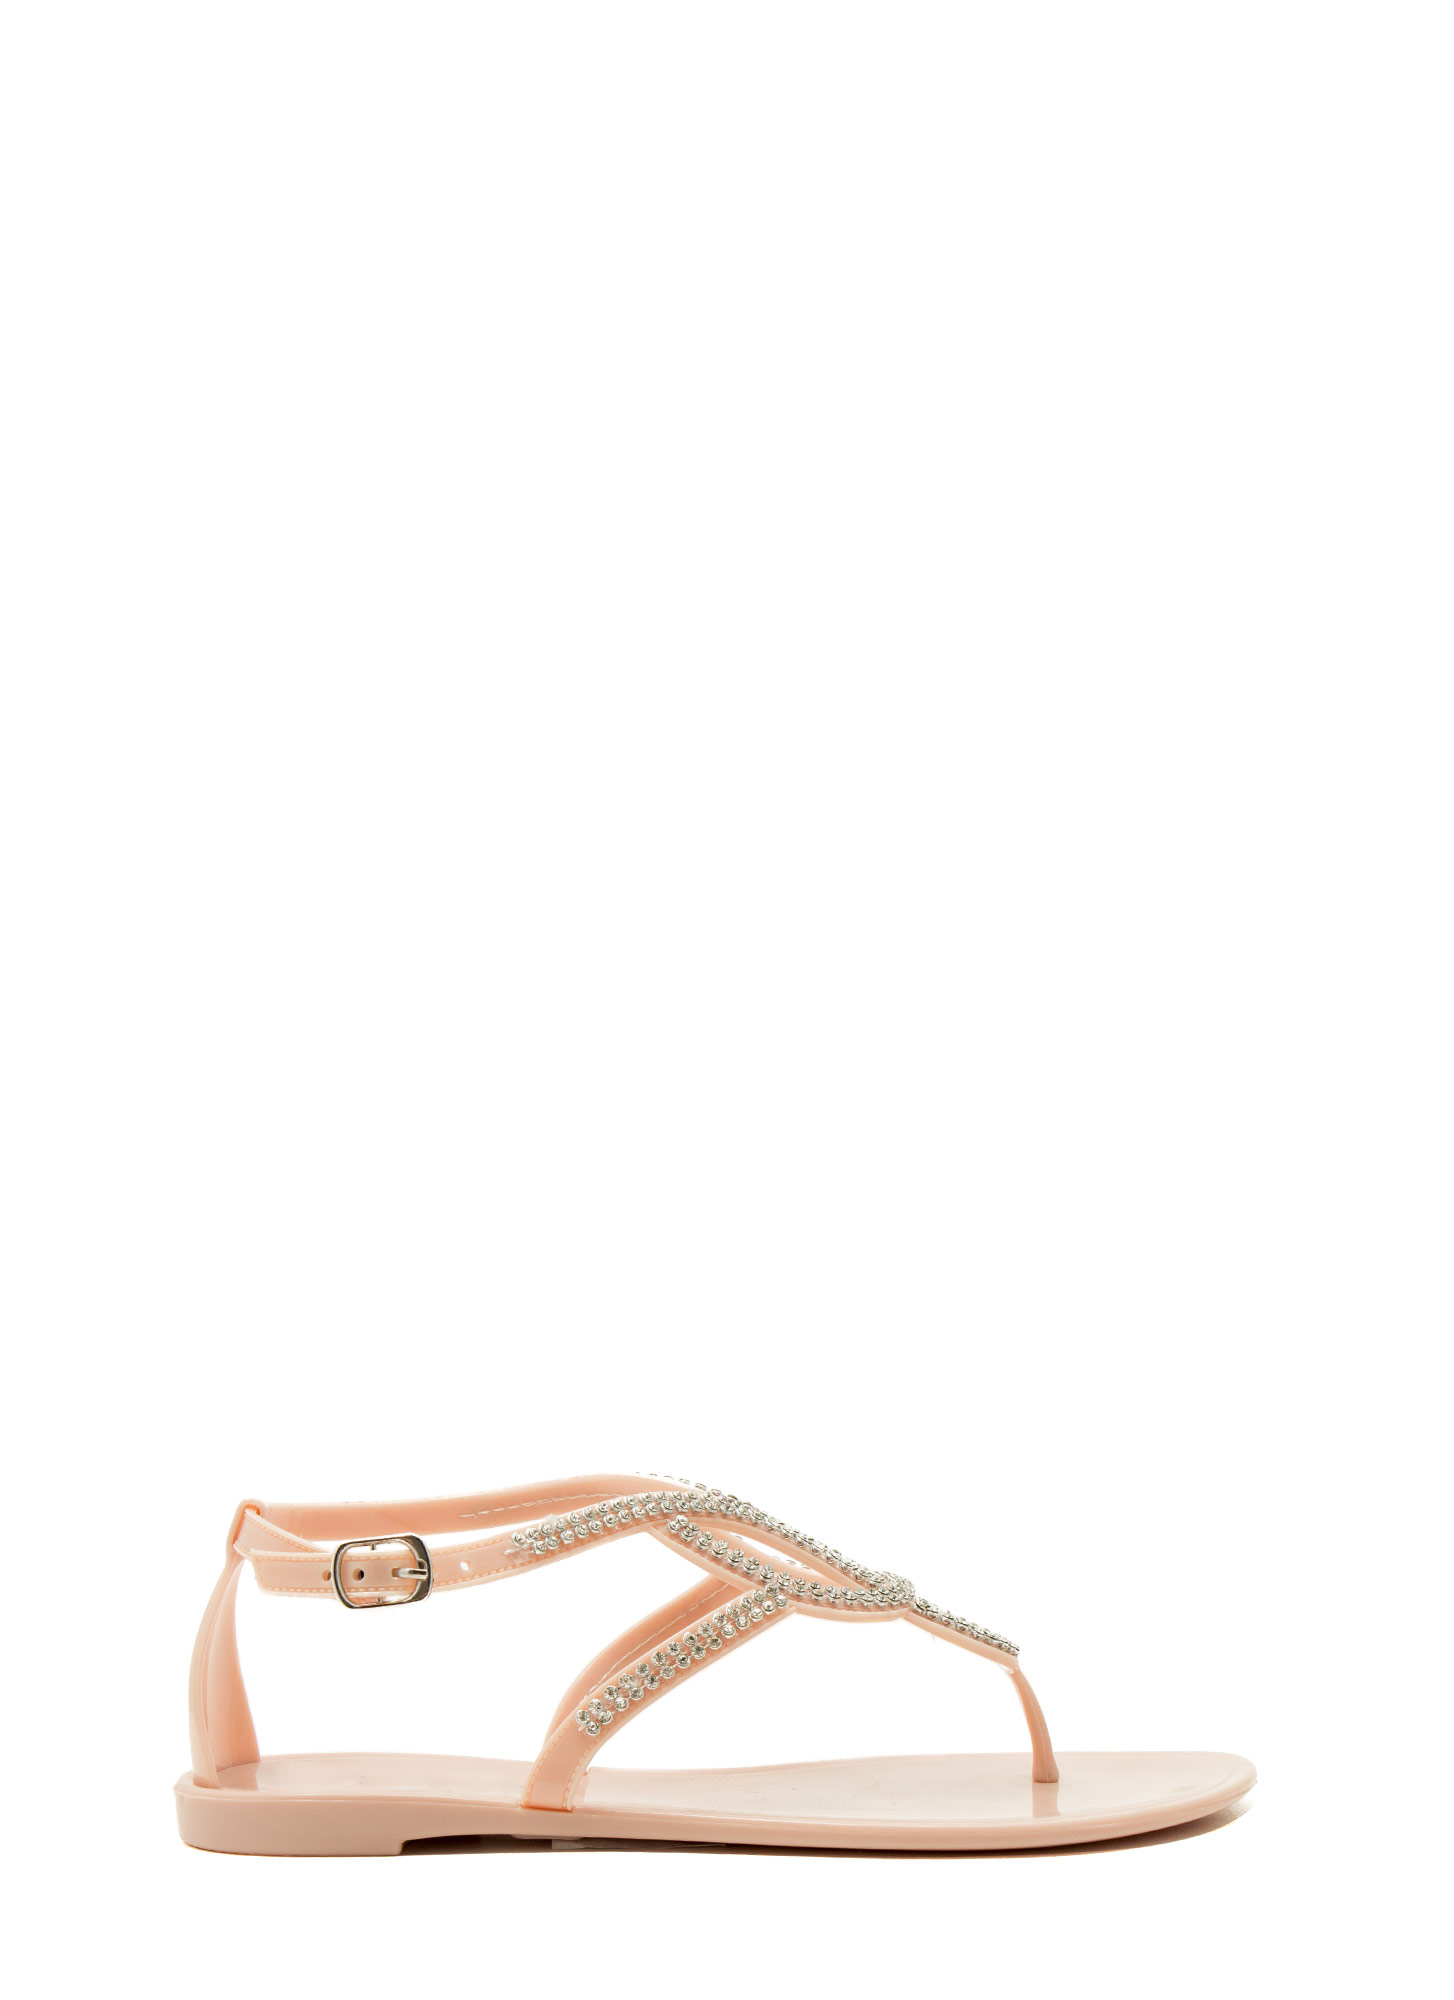 Grown Up Faux Jewel Jelly Sandals NUDE